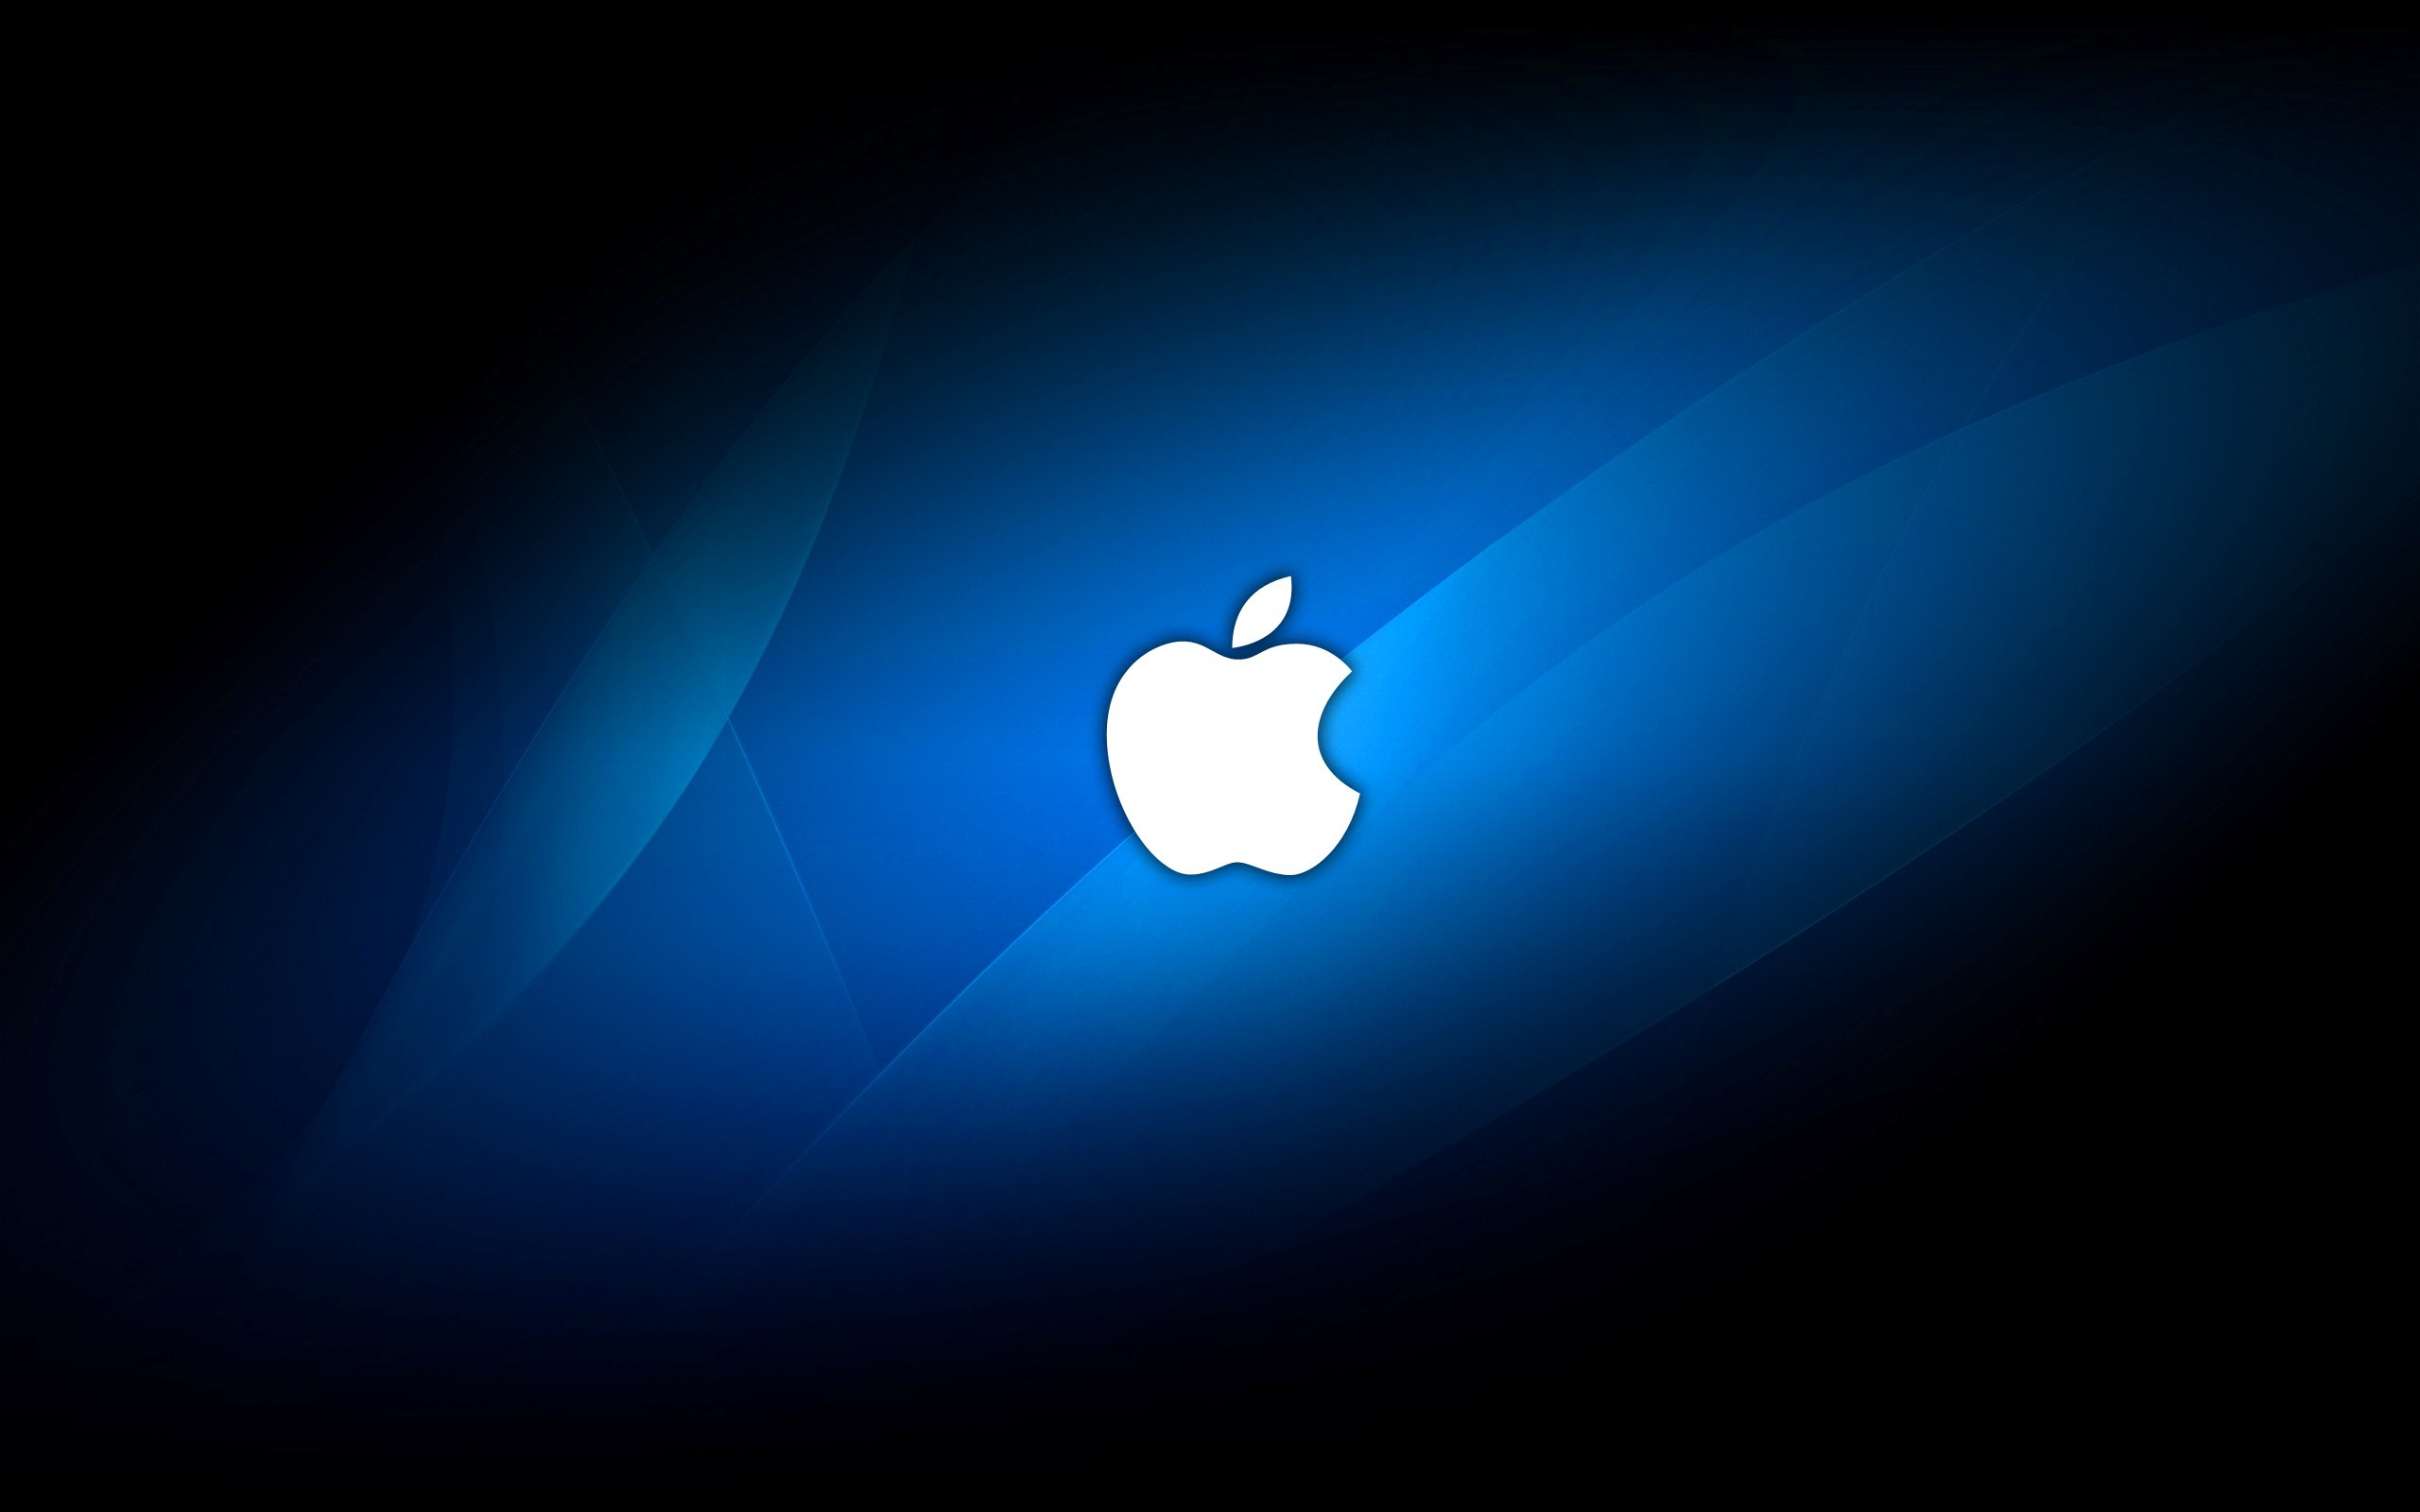 Res: 2560x1600, Apple Company Logo in Blue Background Image